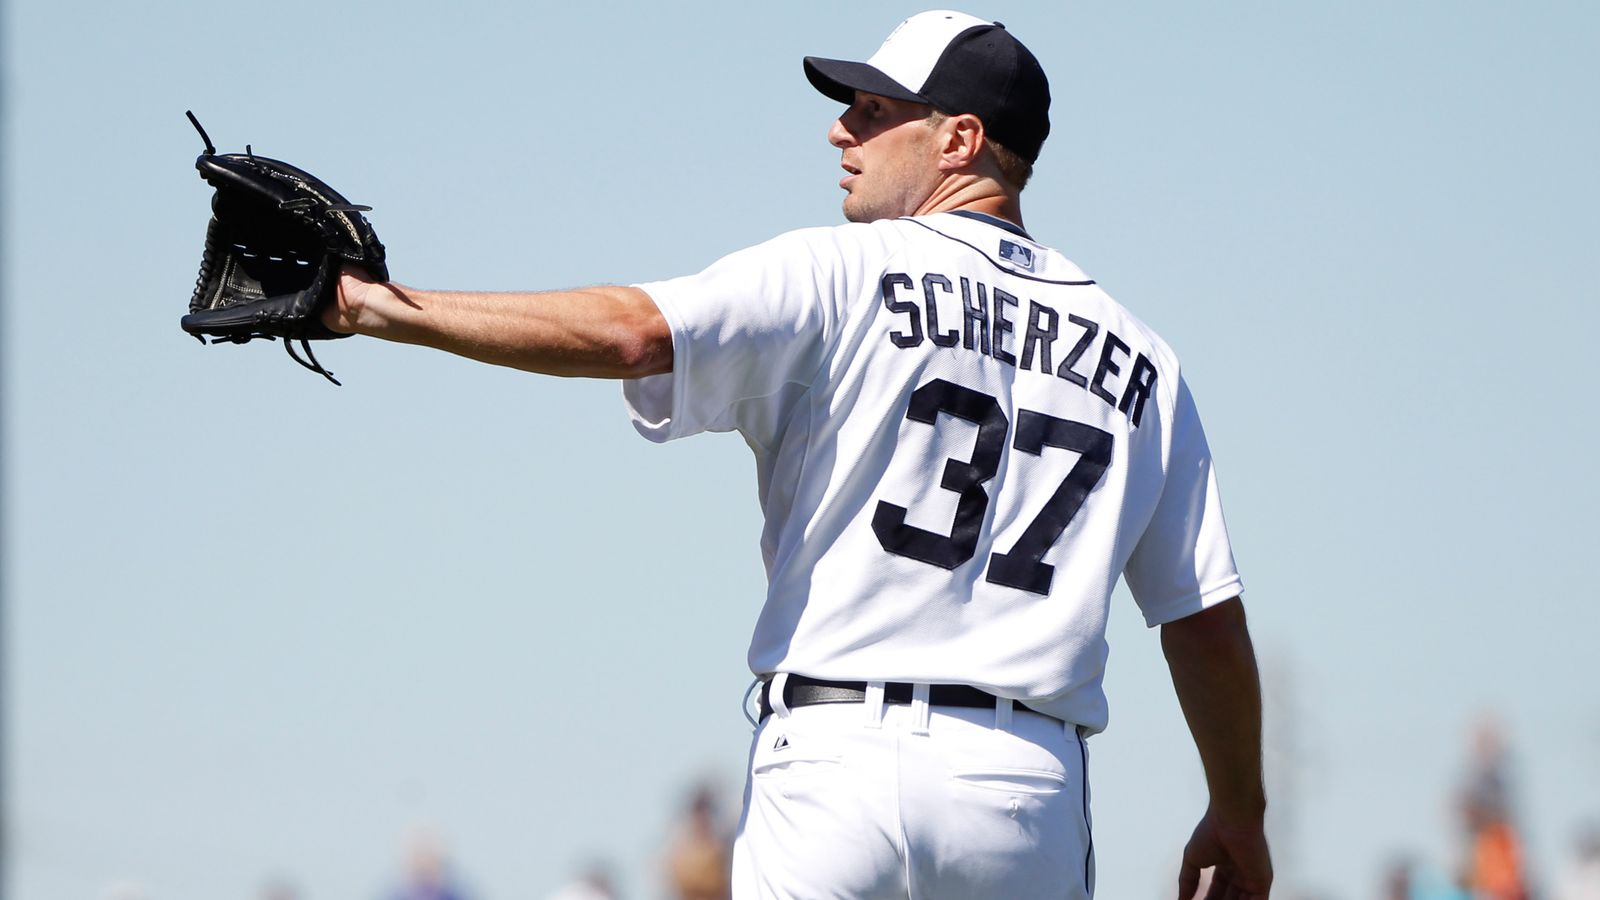 7 years are too many for a Scherzer-Tigers deal